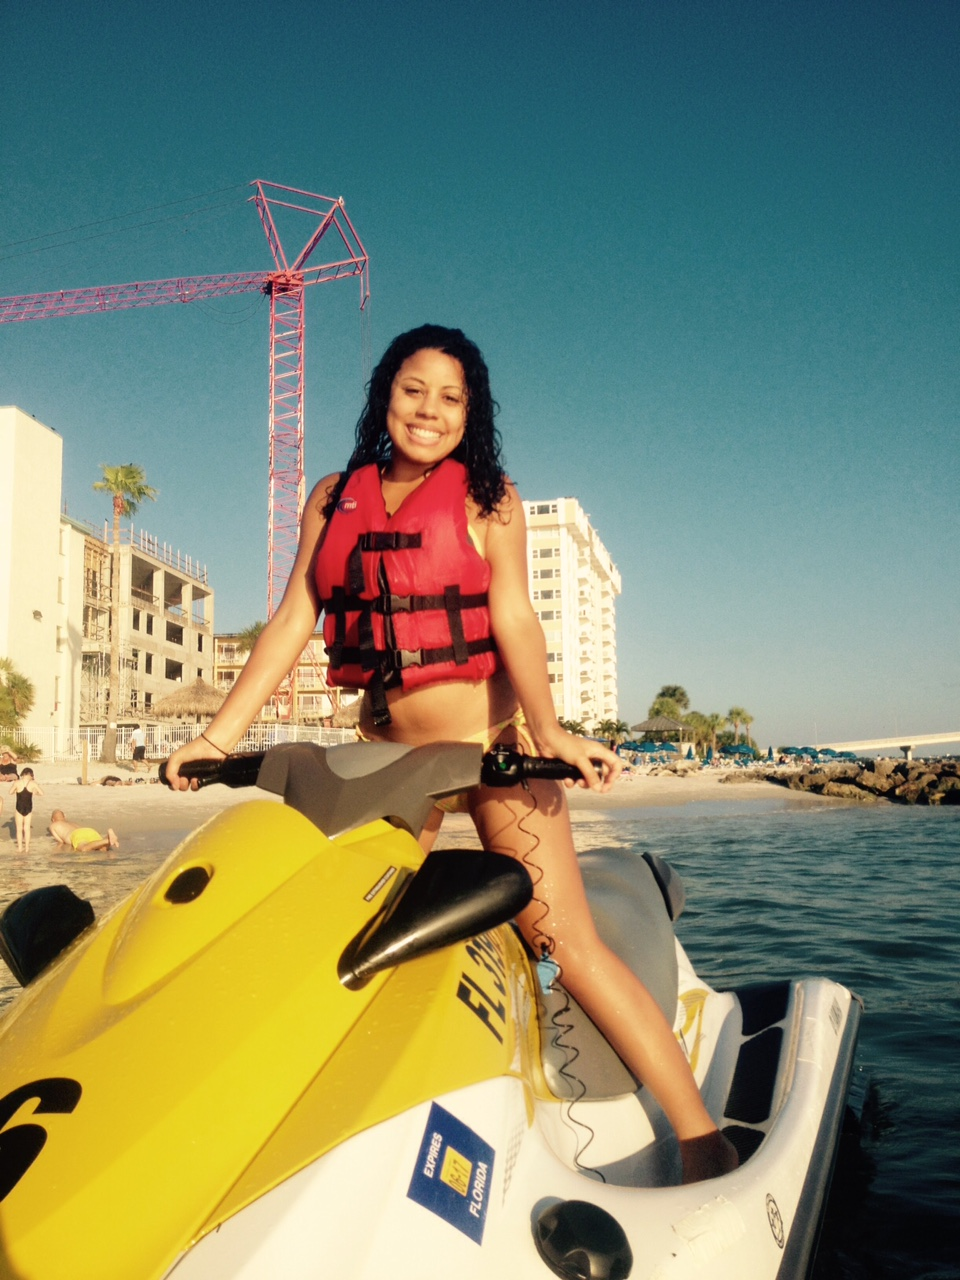 Jet ski rentals, Clearwater beach - Travel Agent Diary